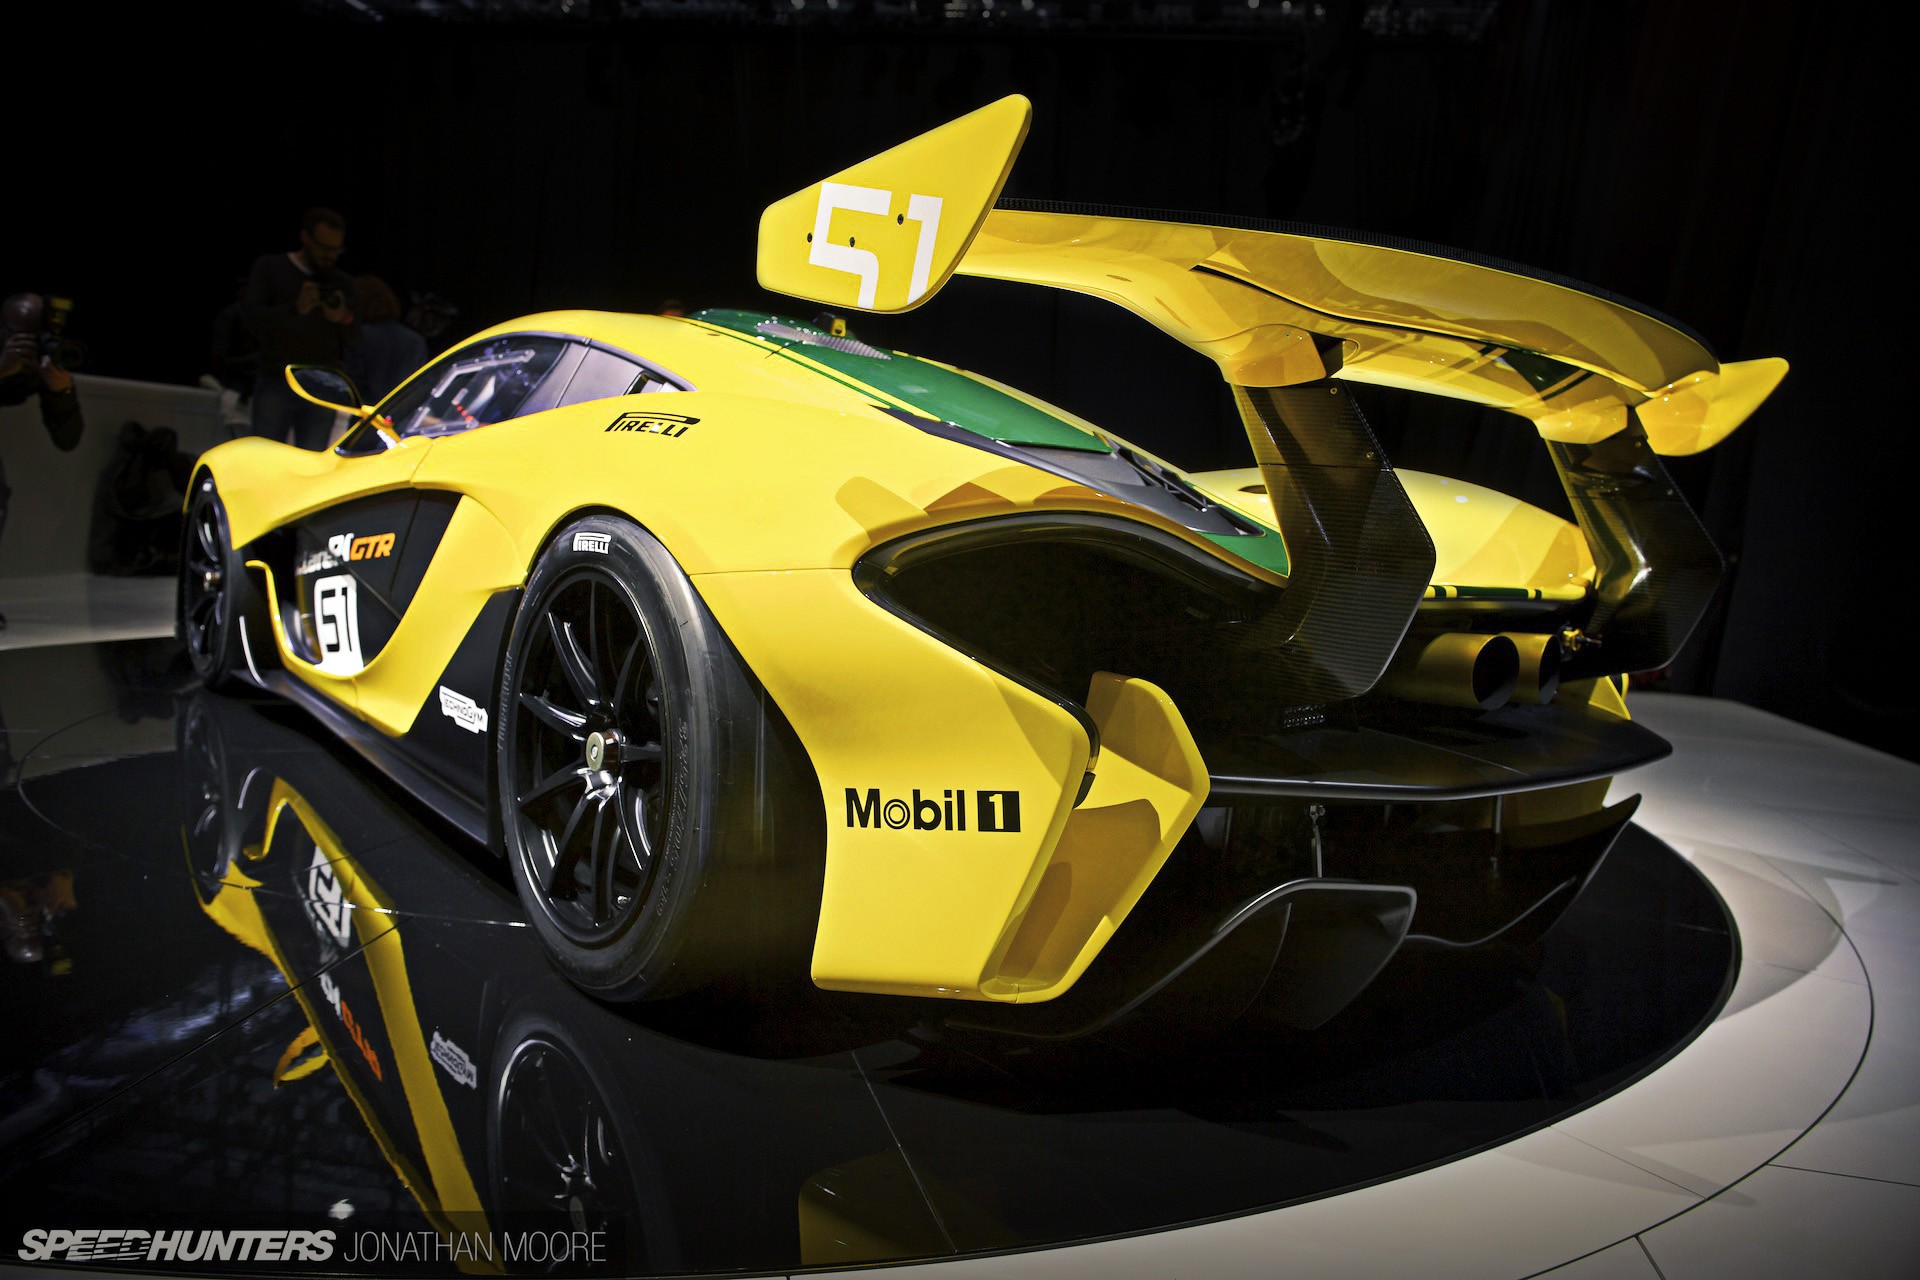 Super Car 5760x1080 Wallpaper Mclaren P1 Mclaren P1 Gtr Mclaren Super Car Race Cars